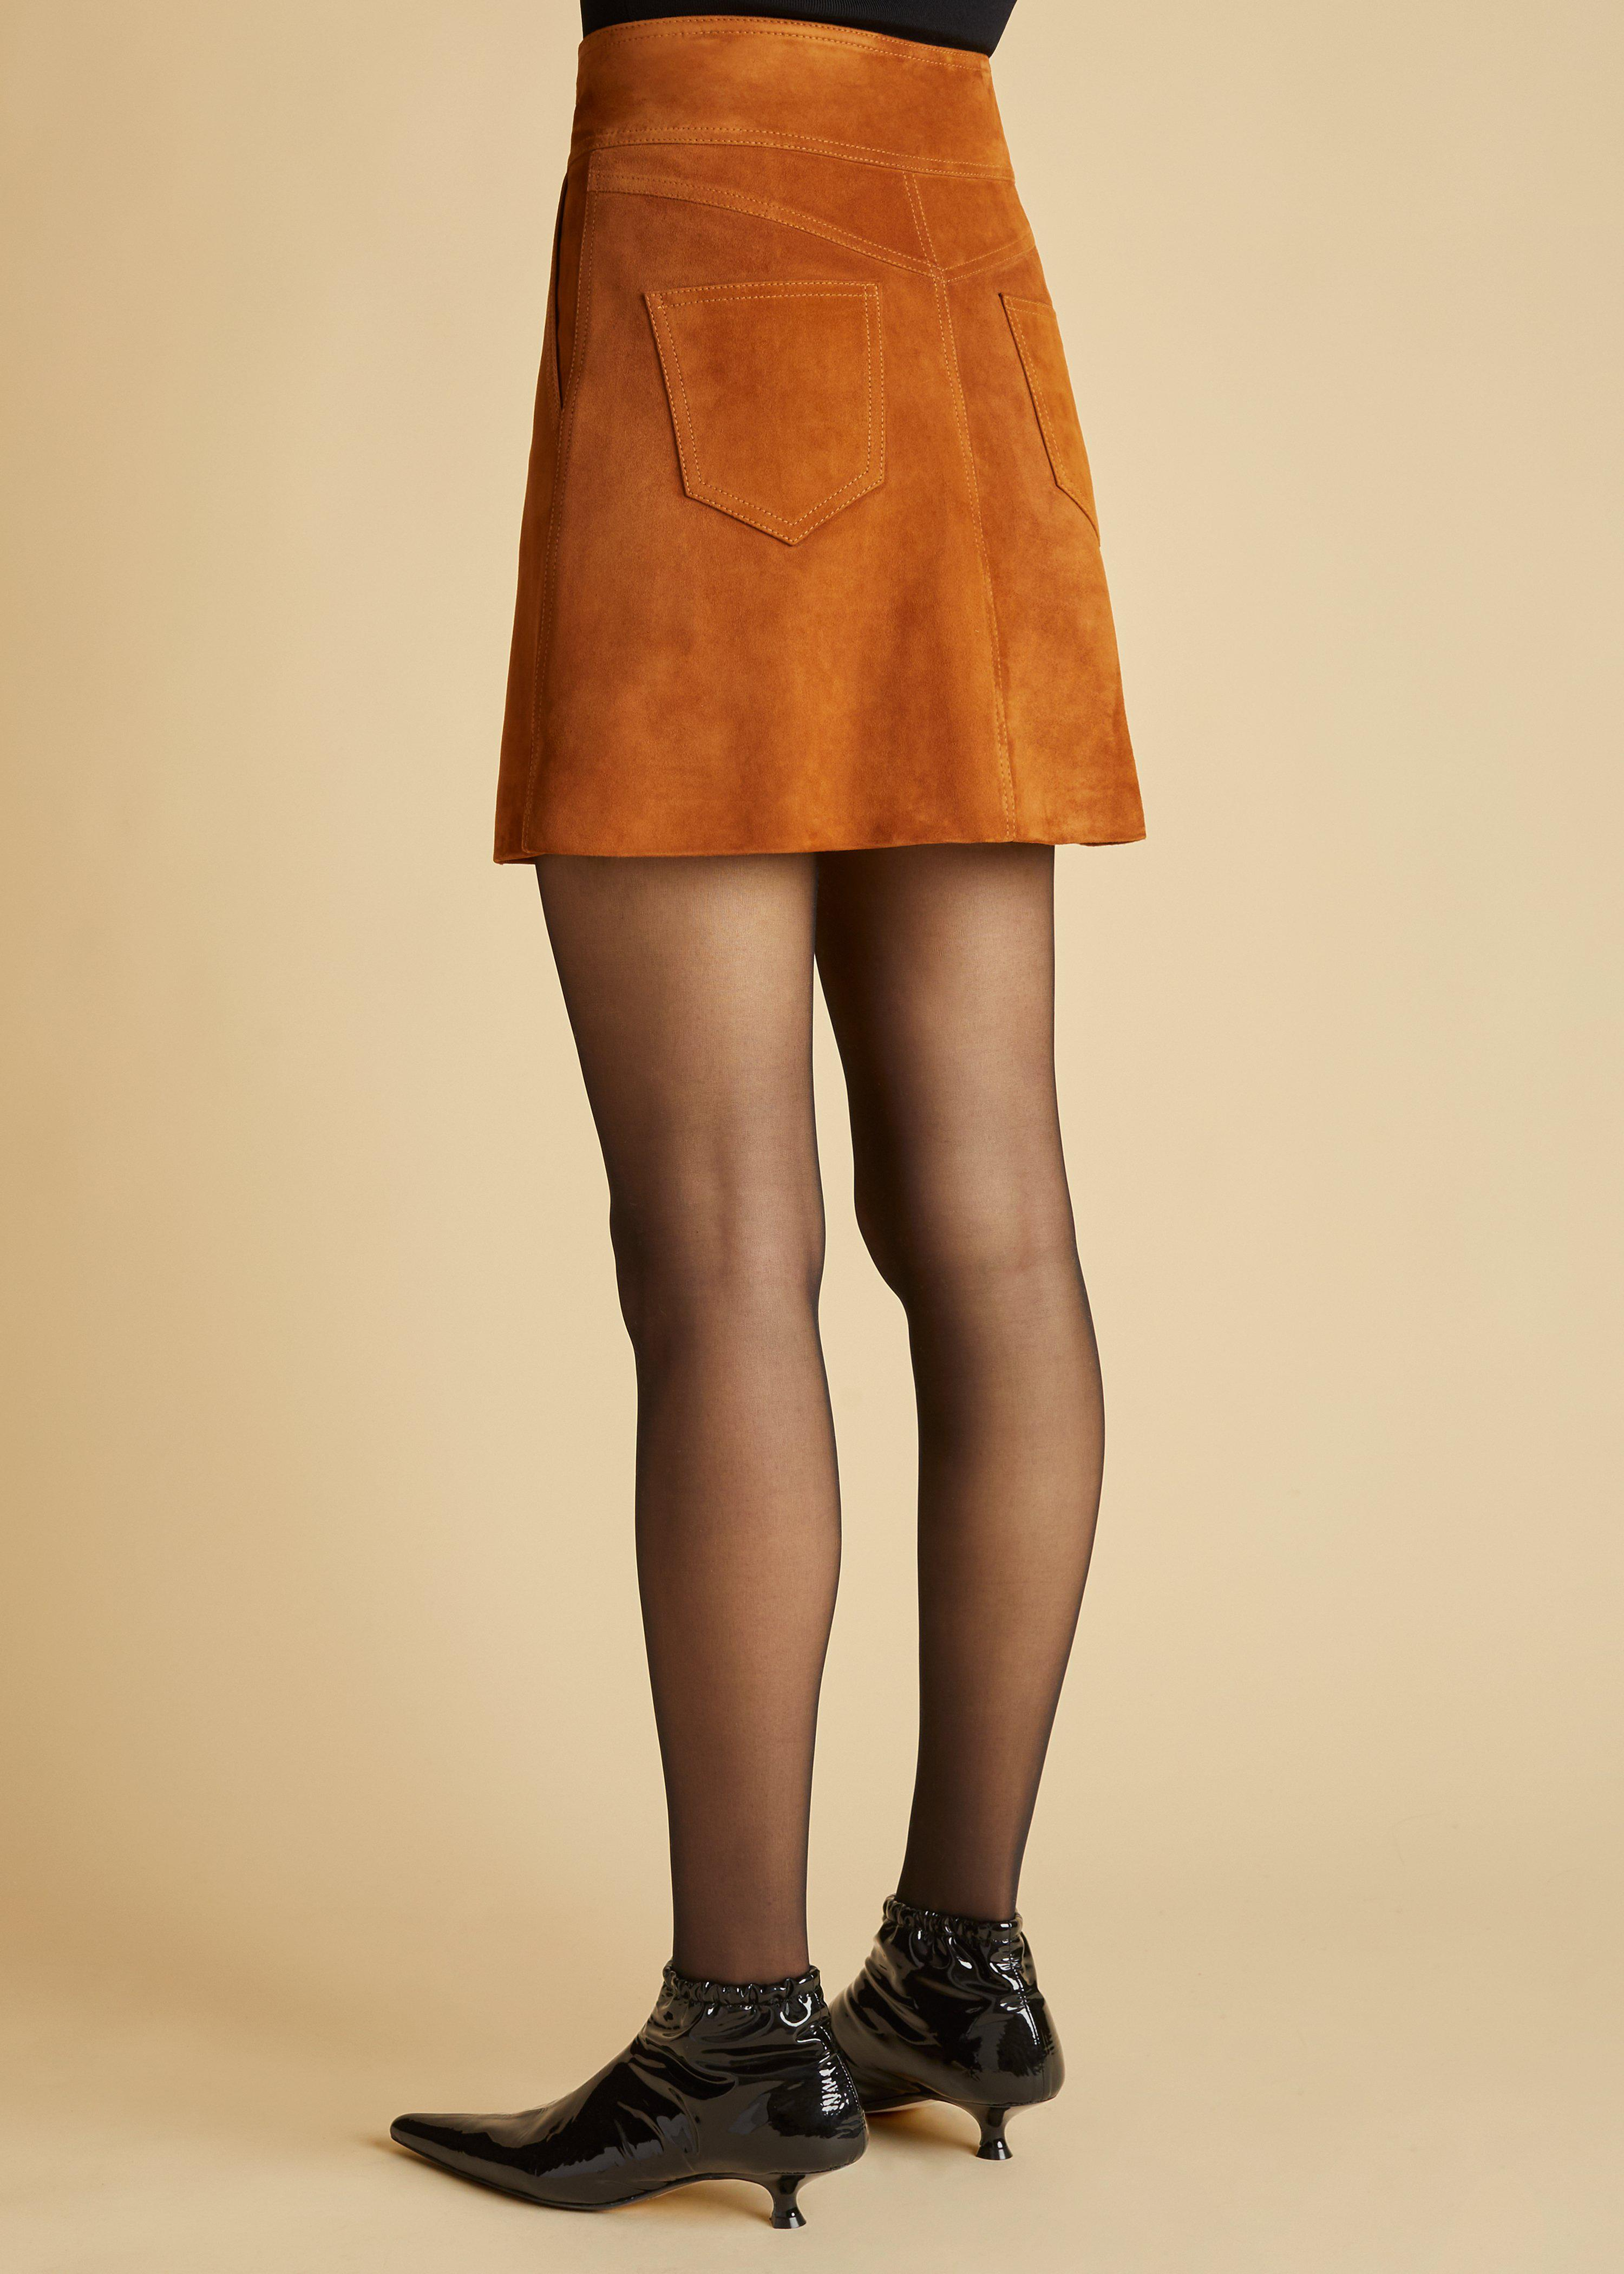 The Giulia Skirt in Chestnut Suede 2